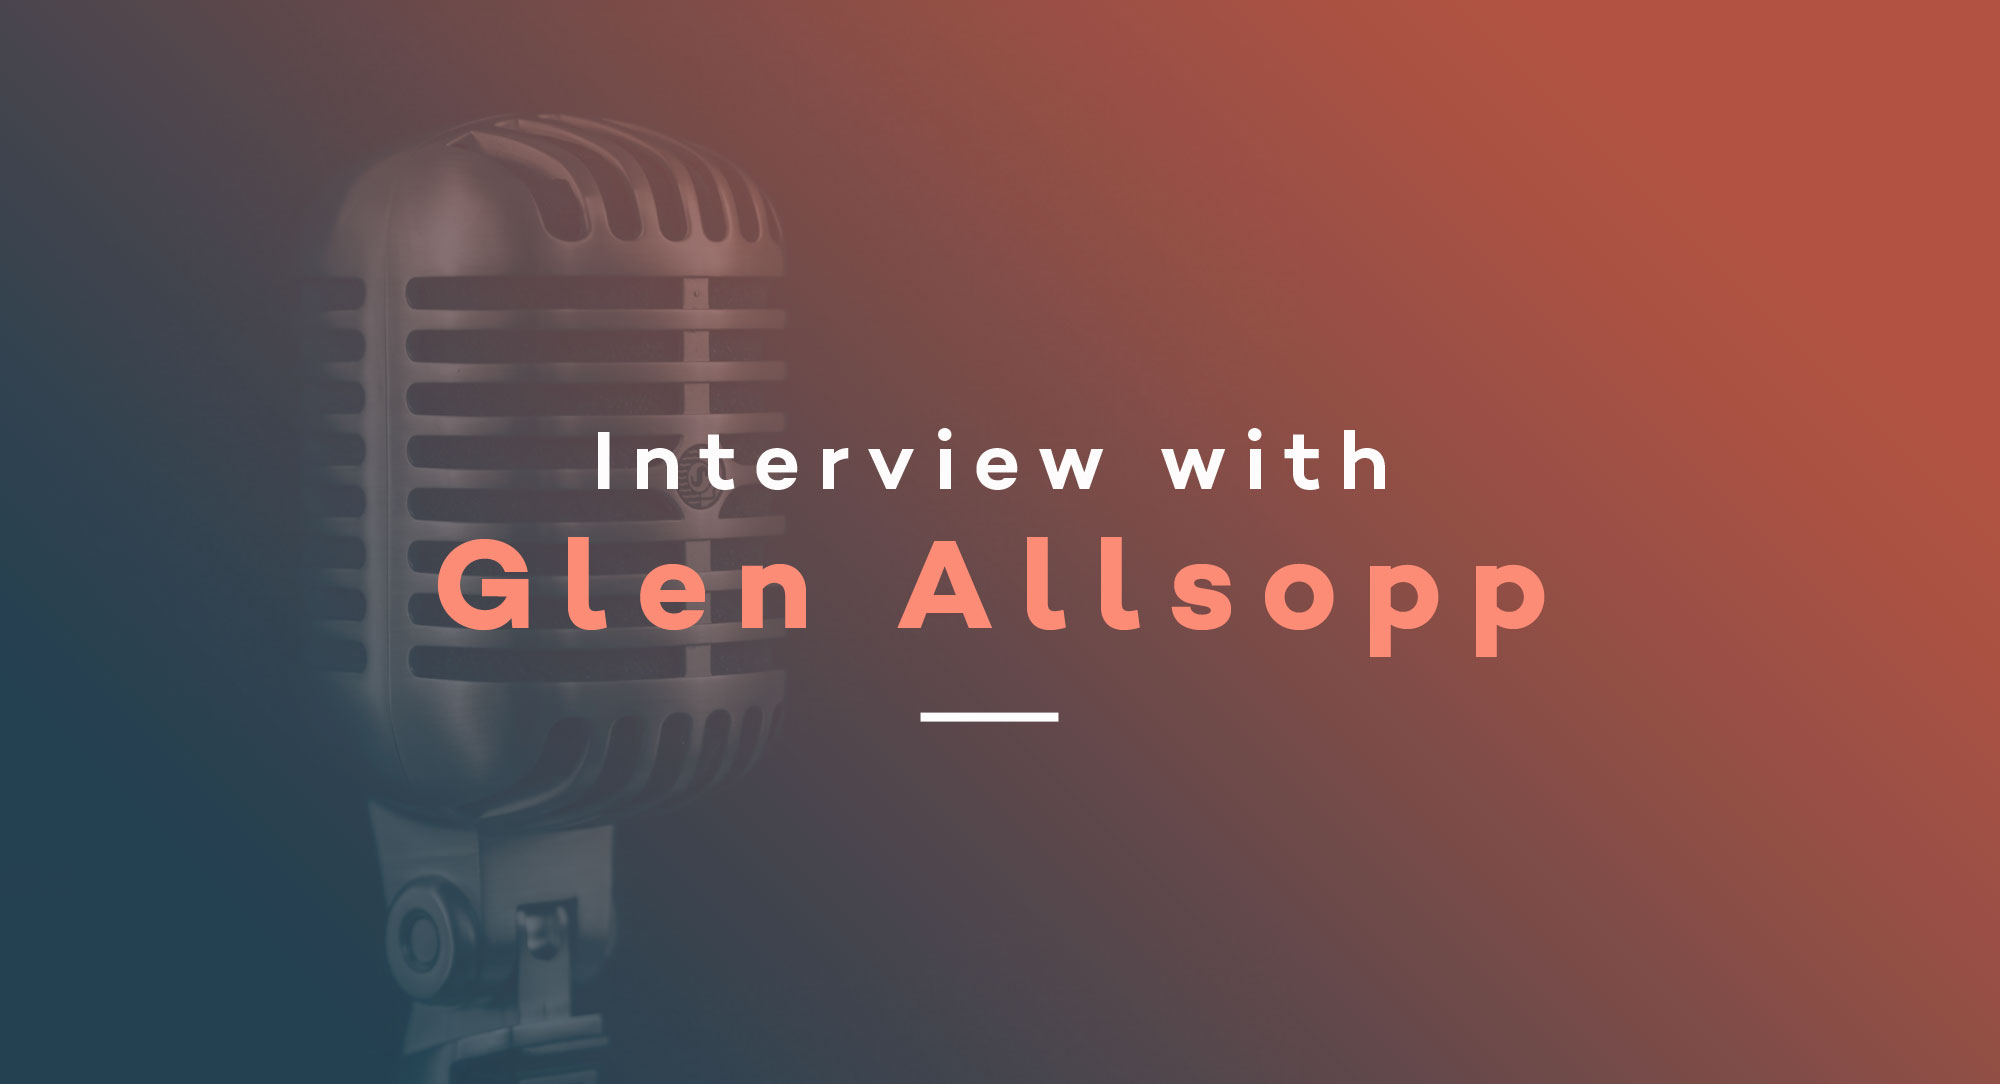 Interview with Glen Allsopp